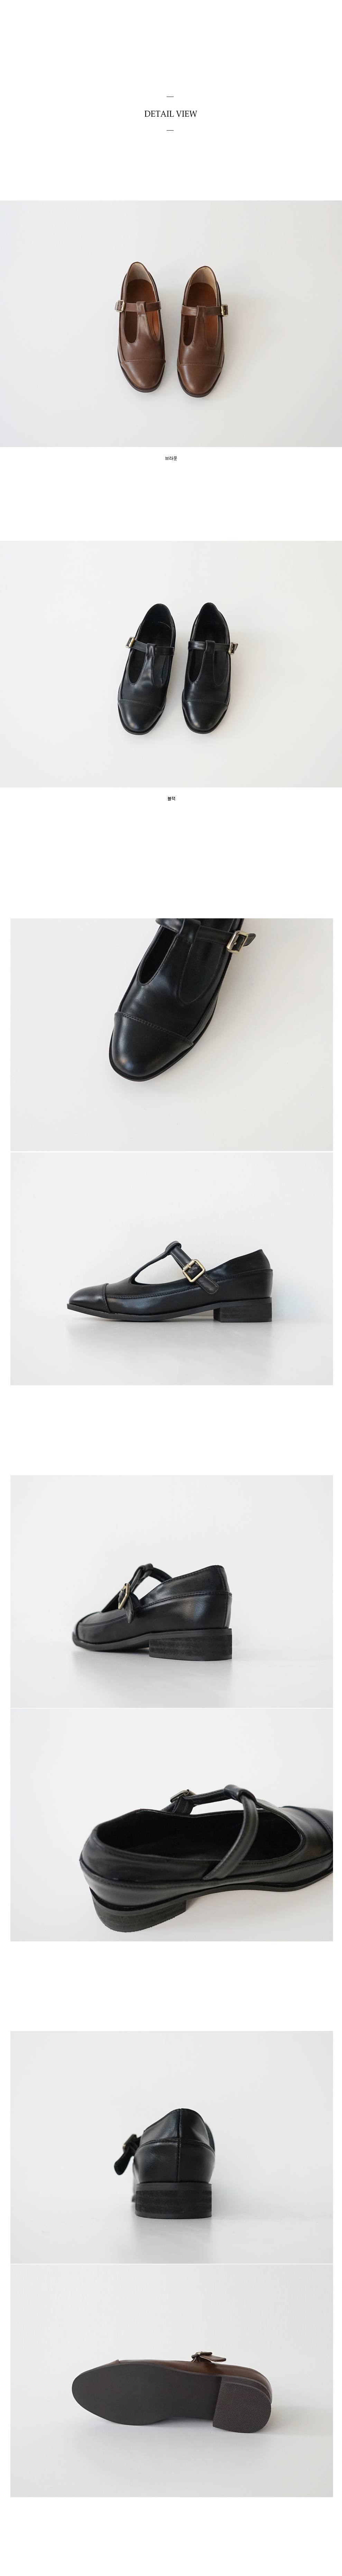 mary jane low shoes (2colors)